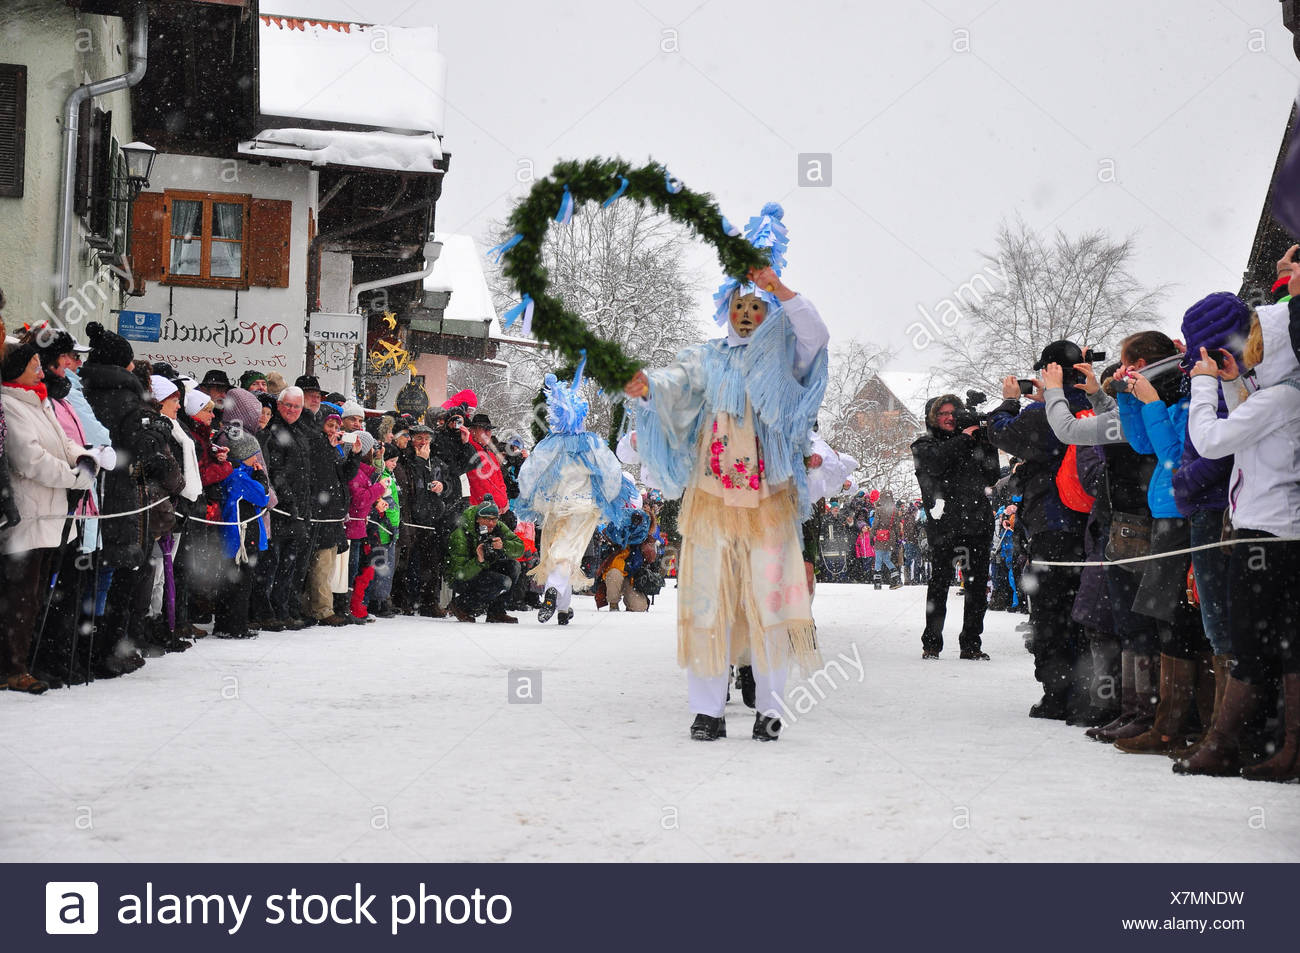 Germany, Bavaria, mittenwald, carnaval, fête Photo Stock